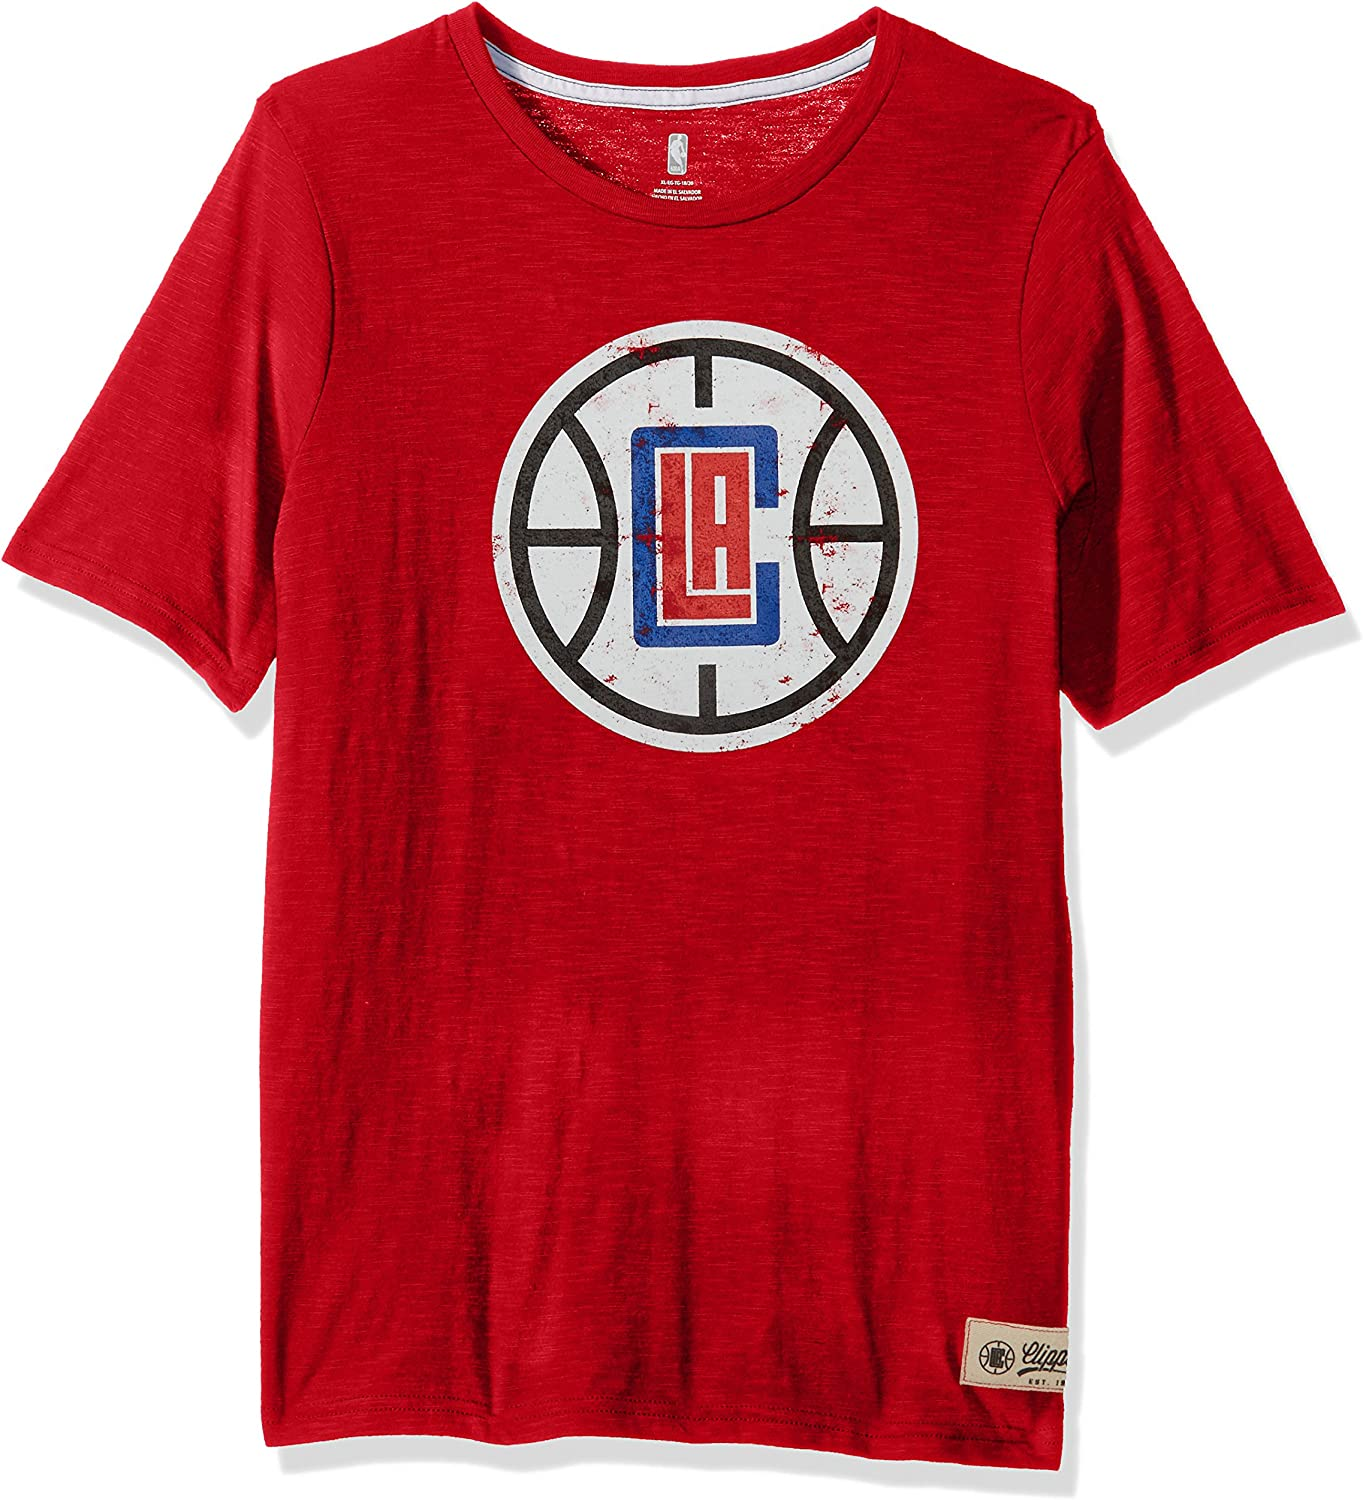 NBA Kids /& Youth Boys Standard Short Sleeve Tee Los Angeles Clippers-Red-M 5-6